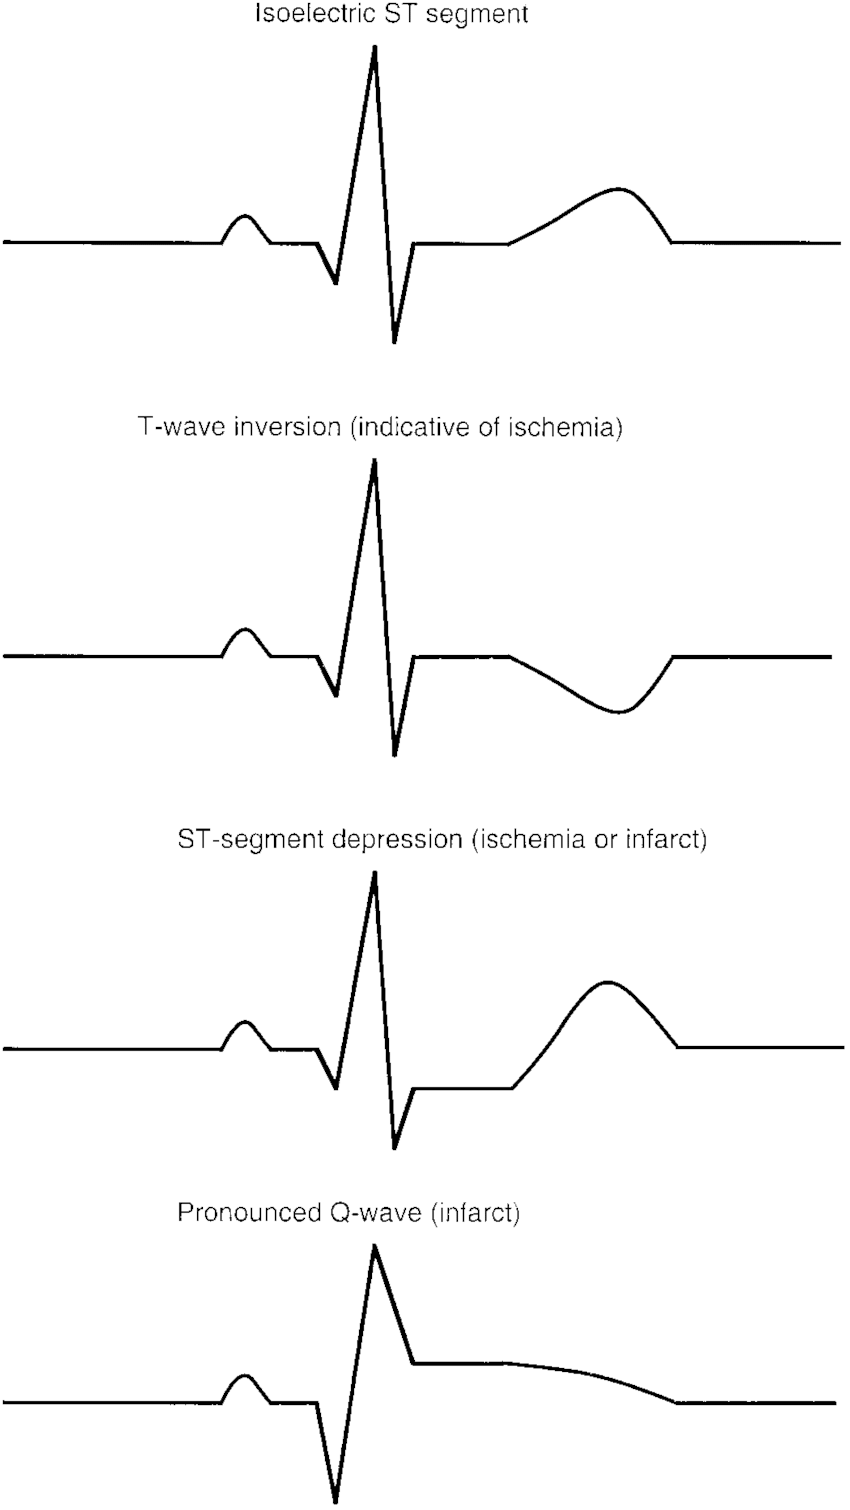 hight resolution of example of 1 normal isoelectric ecg tracing and 3 abnormal ecg tracings fig